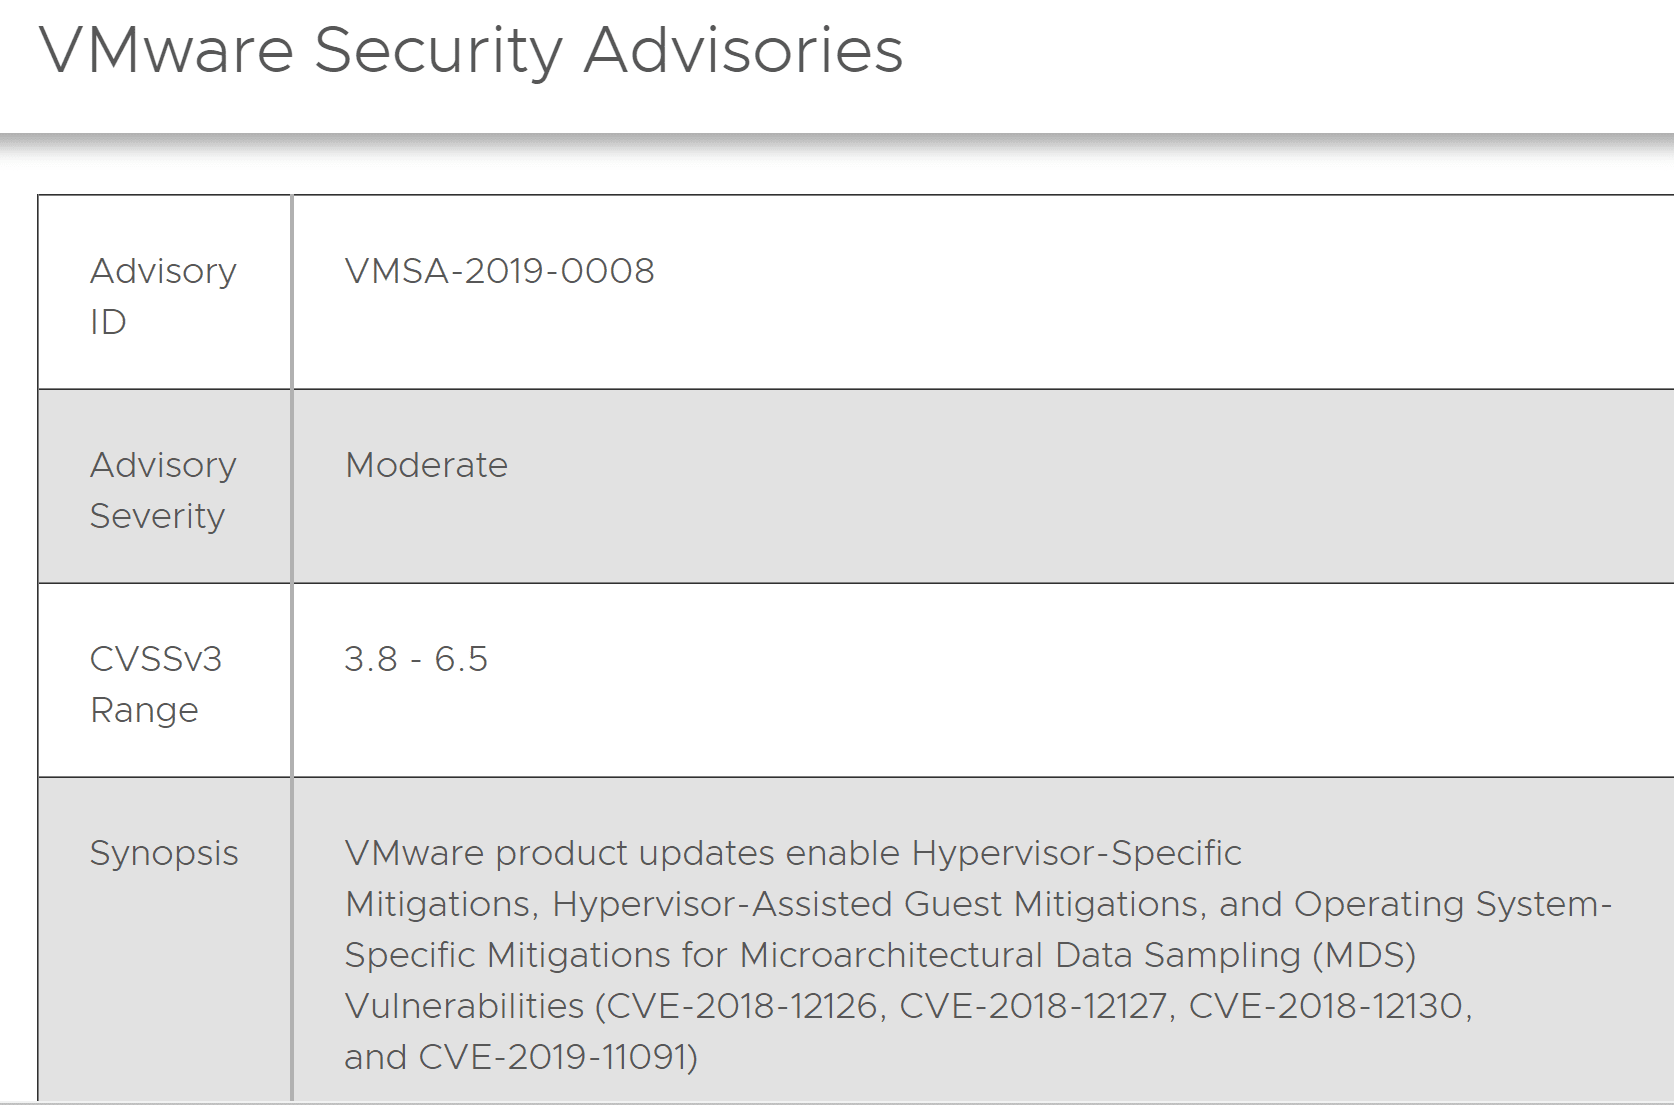 VMware-patches-new-Intel-speculative-execution-microarchitectural-data-sampling-MDS-vulnerability VMware patches new Intel speculative execution microarchitectural data sampling MDS vulnerability